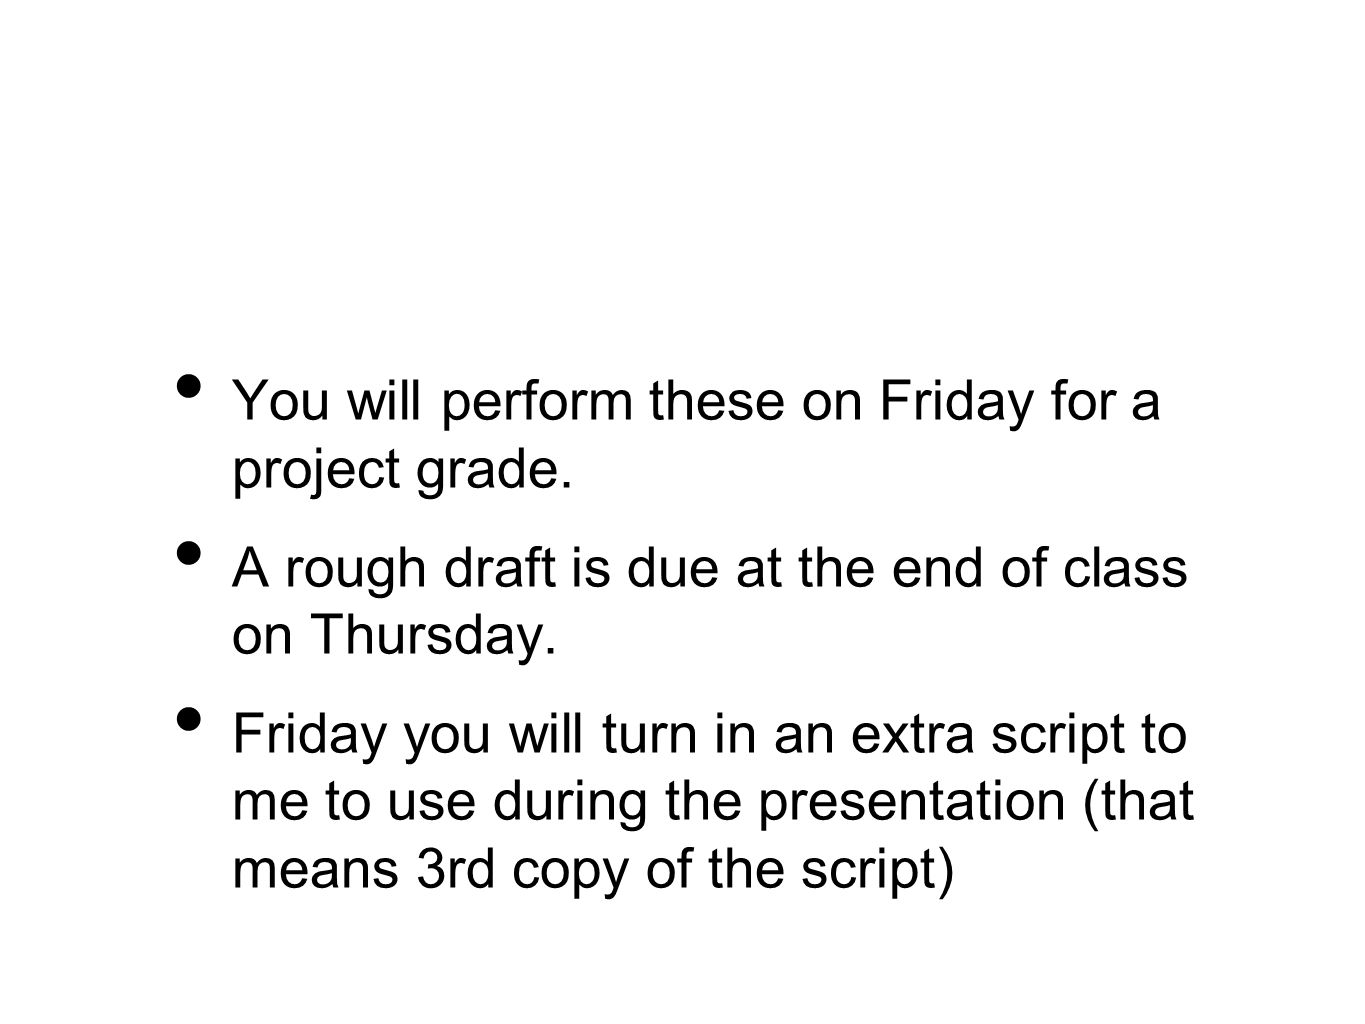 You will perform these on Friday for a project grade.